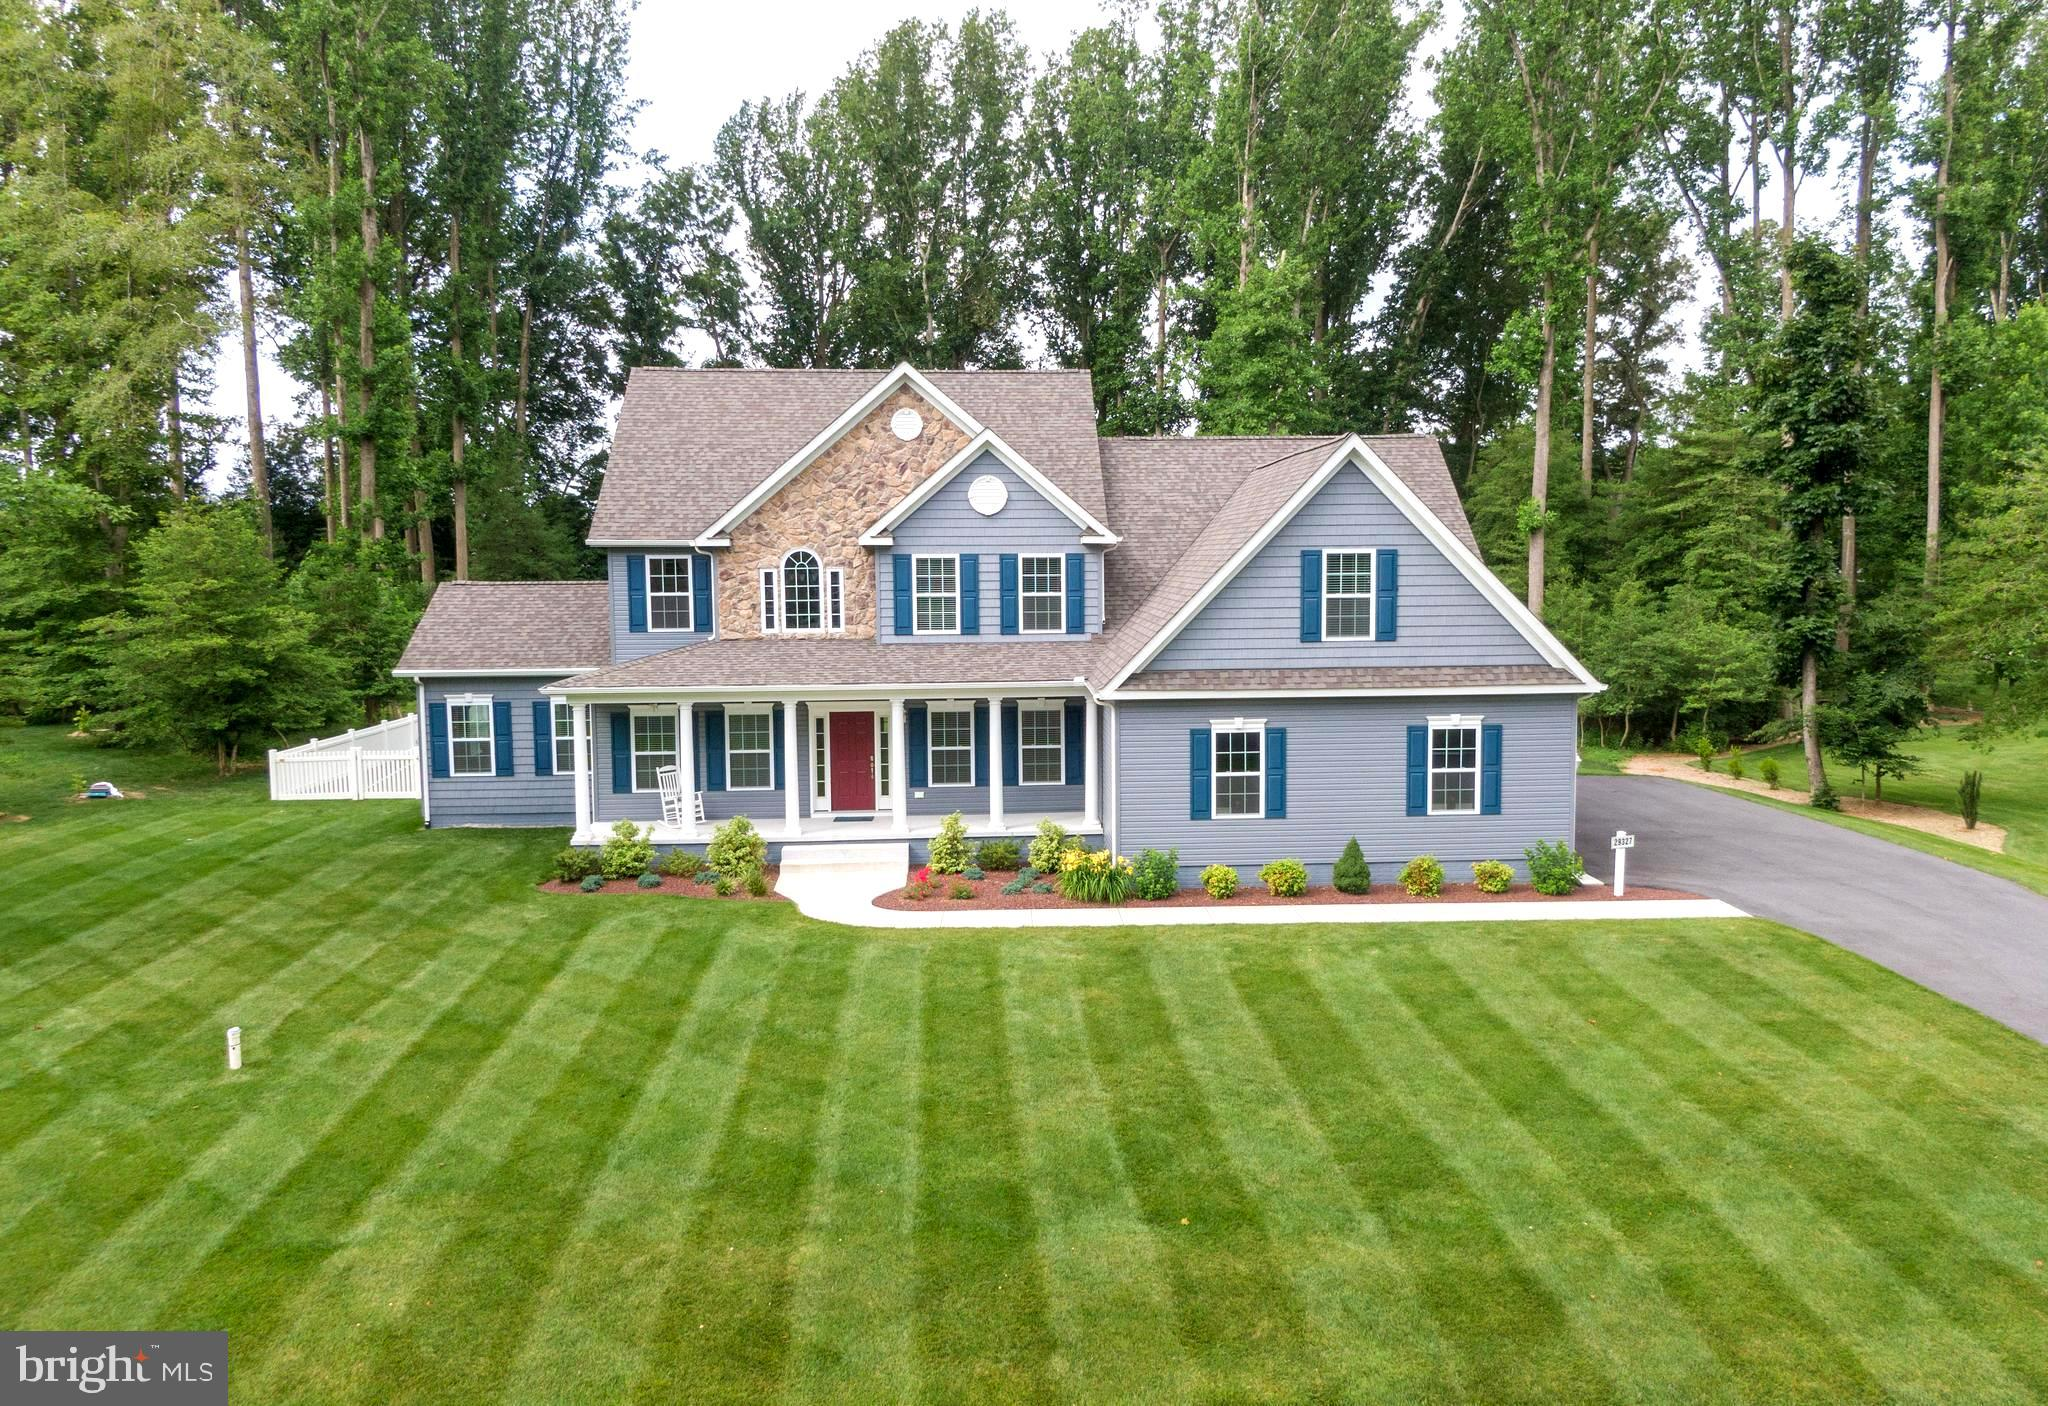 """Nearly new and no wait! This spectacular home on an acre plus is under 3 years young,  barely lived in and provides spacious living both inside and out.  Located in a peaceful, wooded cul-de-sac in River Rock Run where folks come to enjoy coastal living with the beauty and privacy of large lots.  Surrounded by gorgeous homes in pretty settings themselves, this one still stands out as you come down the street. Well manicured and irrigated lawns within the shade of tall trees enhance the striking contrasts of its stone accents and siding details all contributing to the elegance of this well thought out home.  The home was bumped out 2 feet to the back enlarging the kitchen and primary bedroom and also 2 feet to the side enlarging the primary bedroom again and the garage which took it to over 1000 square feet. Plus you will be wowed by the immense second floor bonus room complete with full bathroom on the second floor that could be another bedroom suite or a great place for house guests to sprawl out. (The owner wants to be sure I mention there are 15 closets in the house too,) And if you need more storage for your big toys, tools and other and equipment, this home is on an exterior lot which means you could add a 30x30 detached garage or large shed up to 14x28.  Just make sure you don't put it where you would install your new pool if you want one because they made sure there was room in the yard for that too. (See the septic layout in the documents). The extra height in the clean, dry basement with outside entrance taking it to 9 feet and rough plumbing for a powder room should get your mind into high gear thinking about all the ways you could turn that space into a gym, media room or just a full blown recreation area.  Well designed kitchen with stainless steel appliances, 42"""" cabinets and granite countertop with angled breakfast bar open to the great room lets you be part of what's going around you while putting together your next great meal.  The professional pictu"""